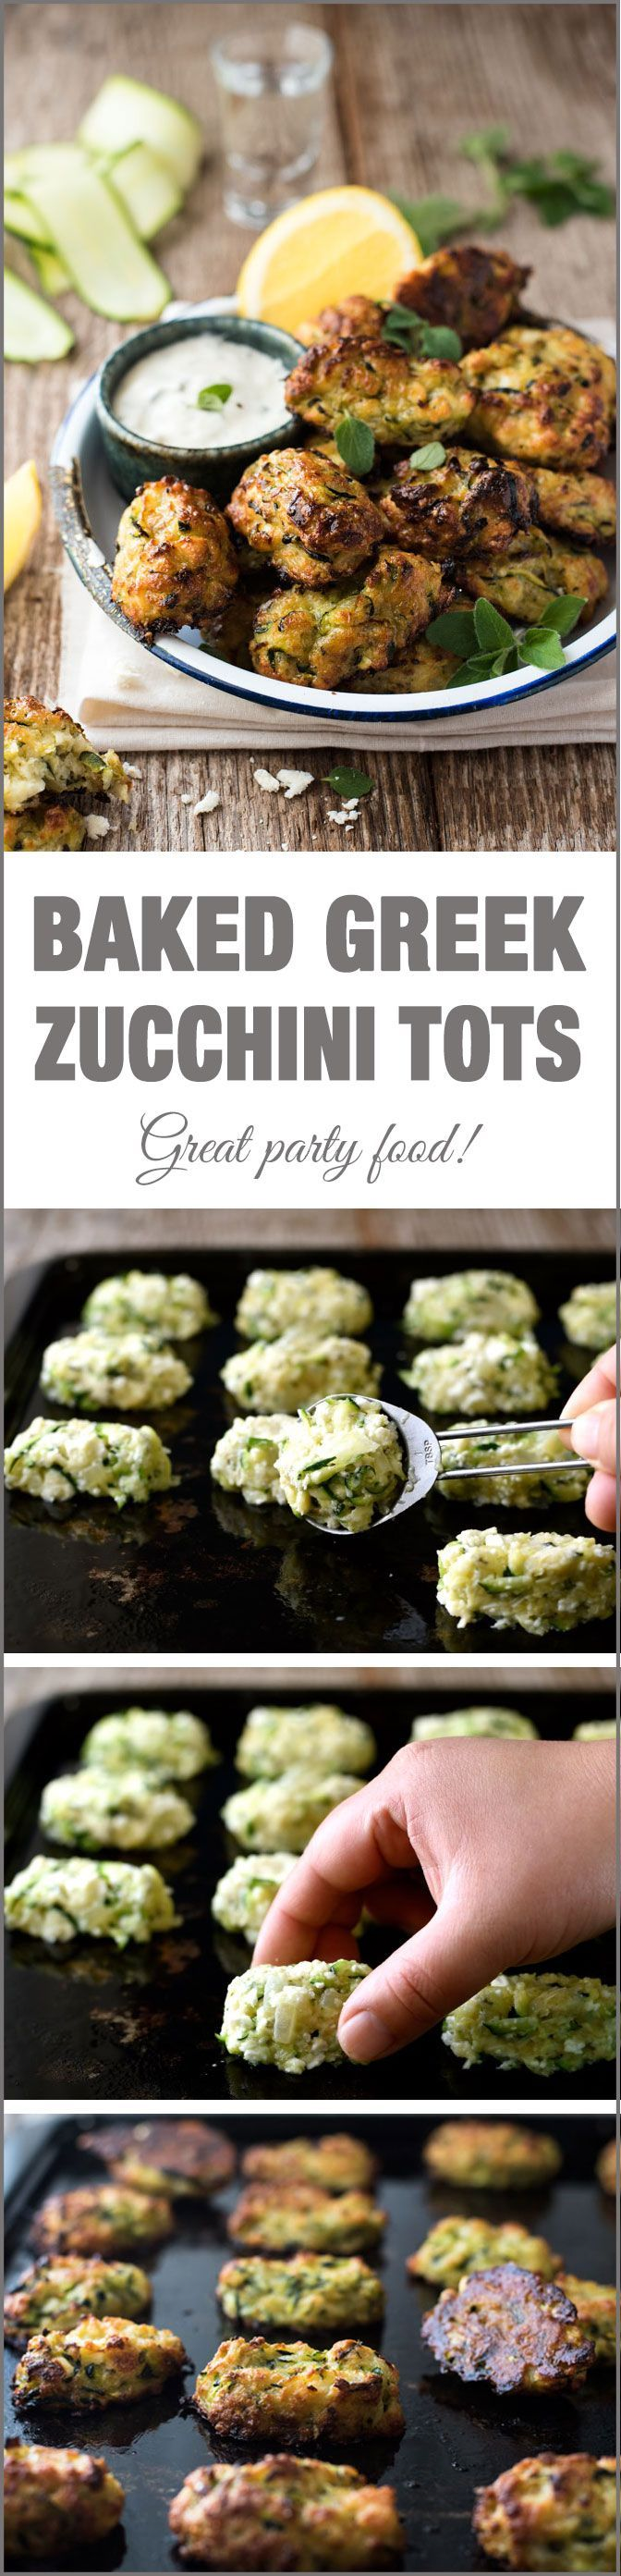 9797 best greek food recipes images on pinterest greek food greek zucchini tots fritters transform the humble zucchini into these tasty bites easy to make traditional greek recipe forumfinder Gallery